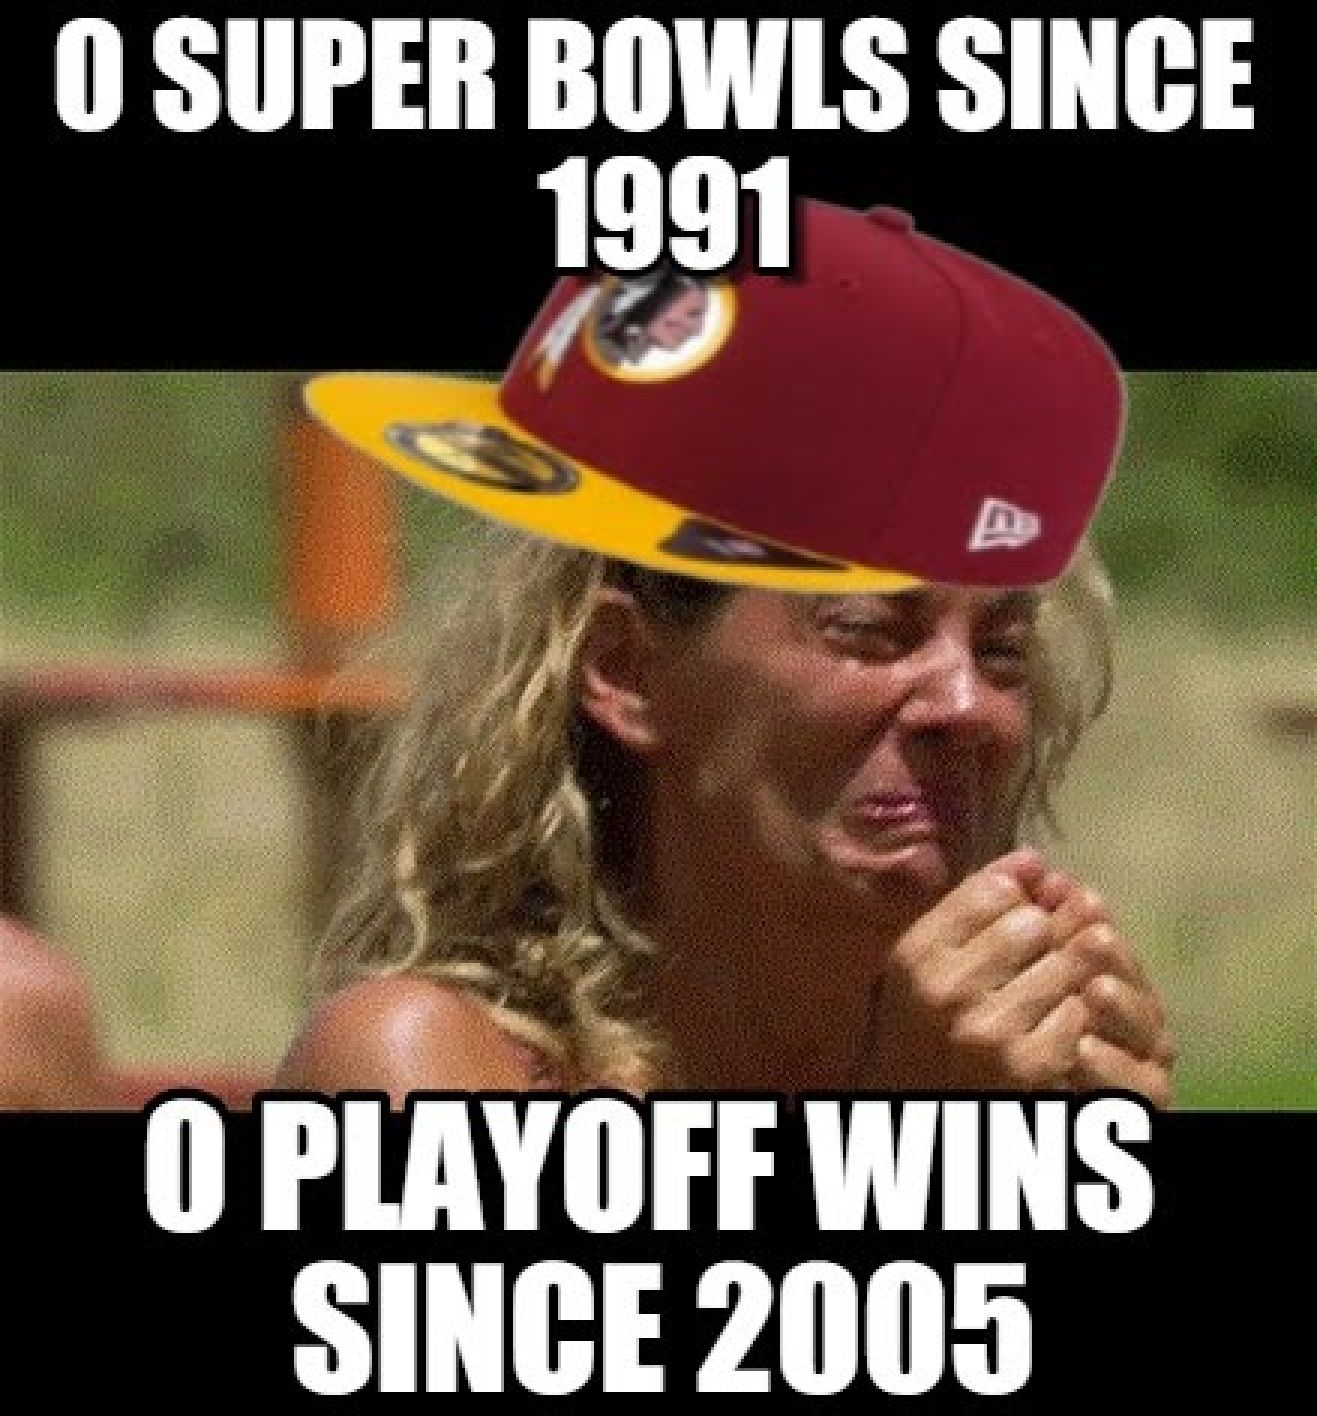 The washingtone redskins suck